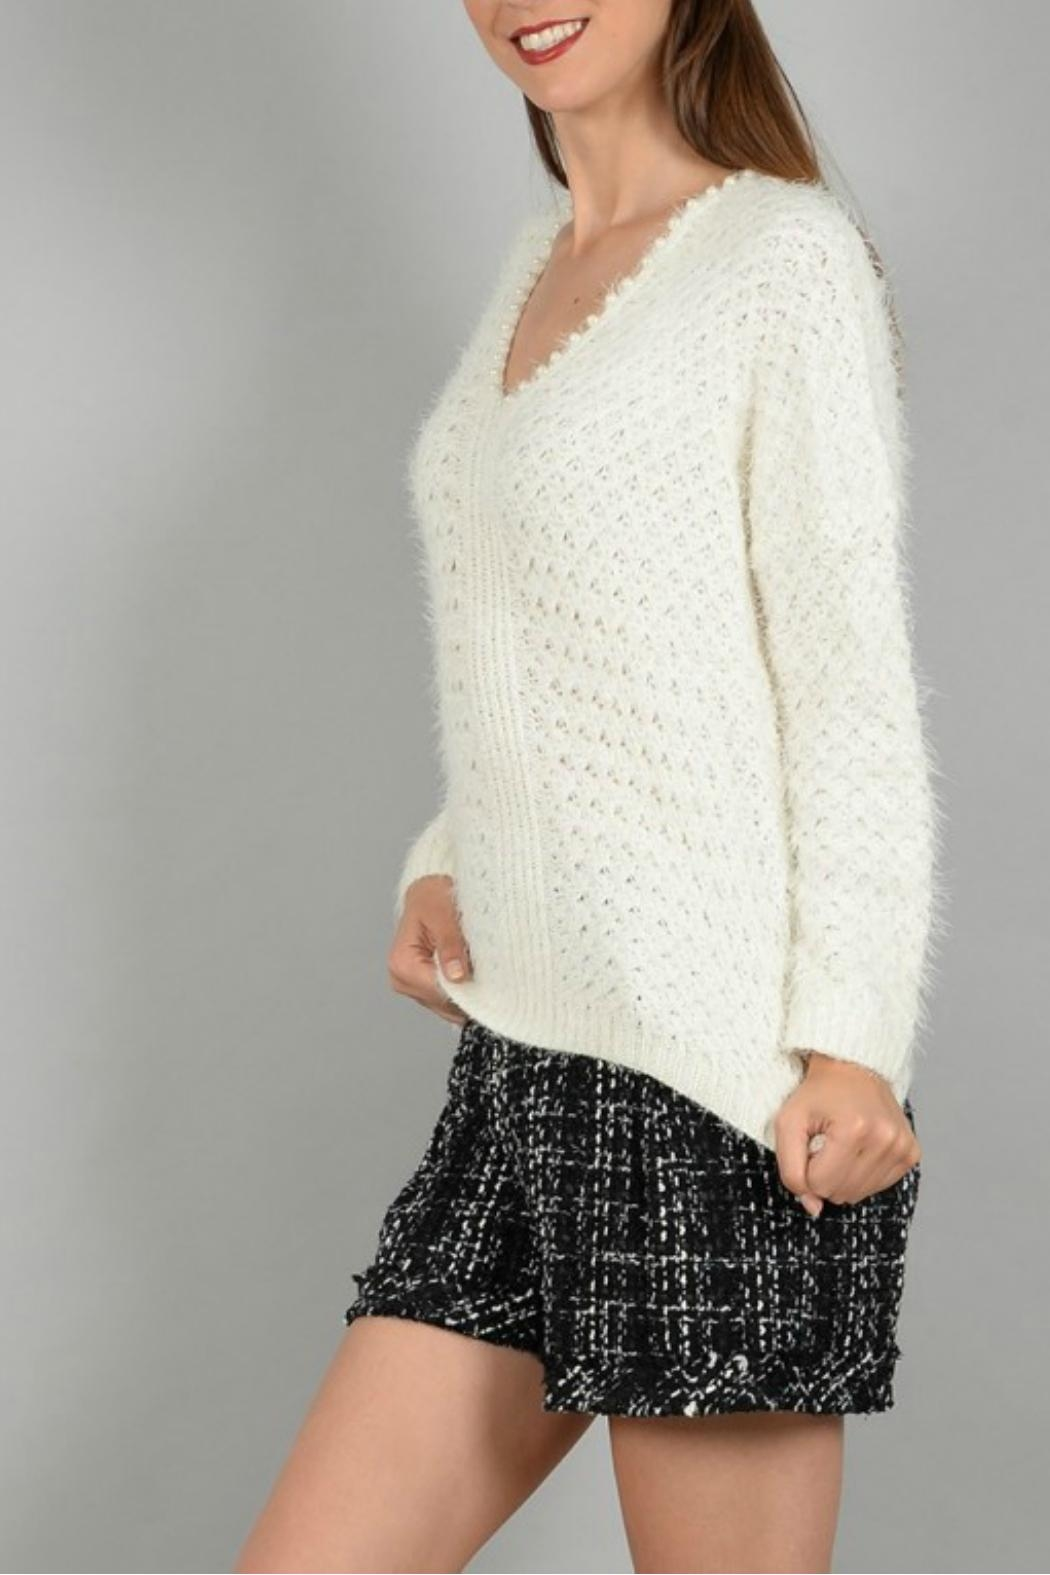 Molly Bracken Knitted Pullover Sweater - Side Cropped Image